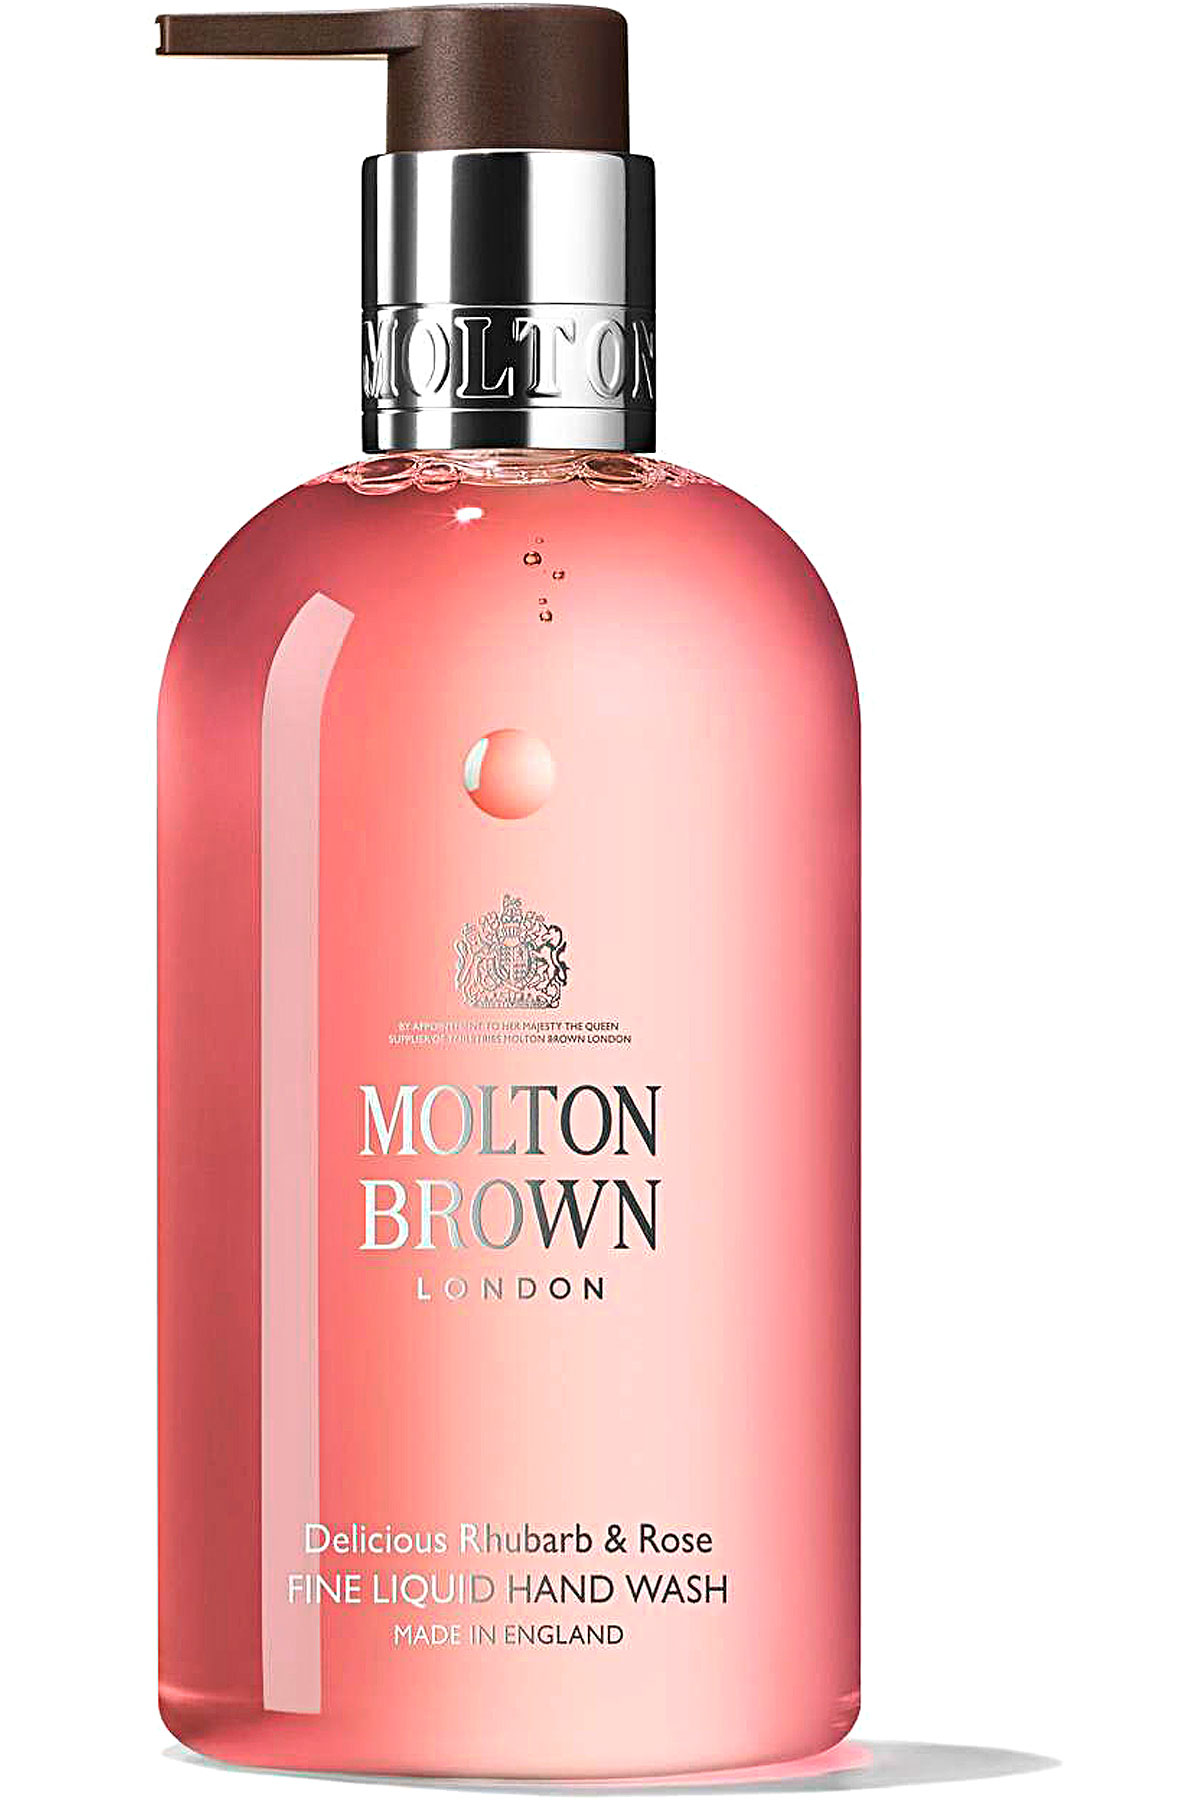 Molton Brown Beauty for Women, Delicious Rhubarb & Rose - Liquid Hand Wash - 300 Ml, 2019, 300 ml